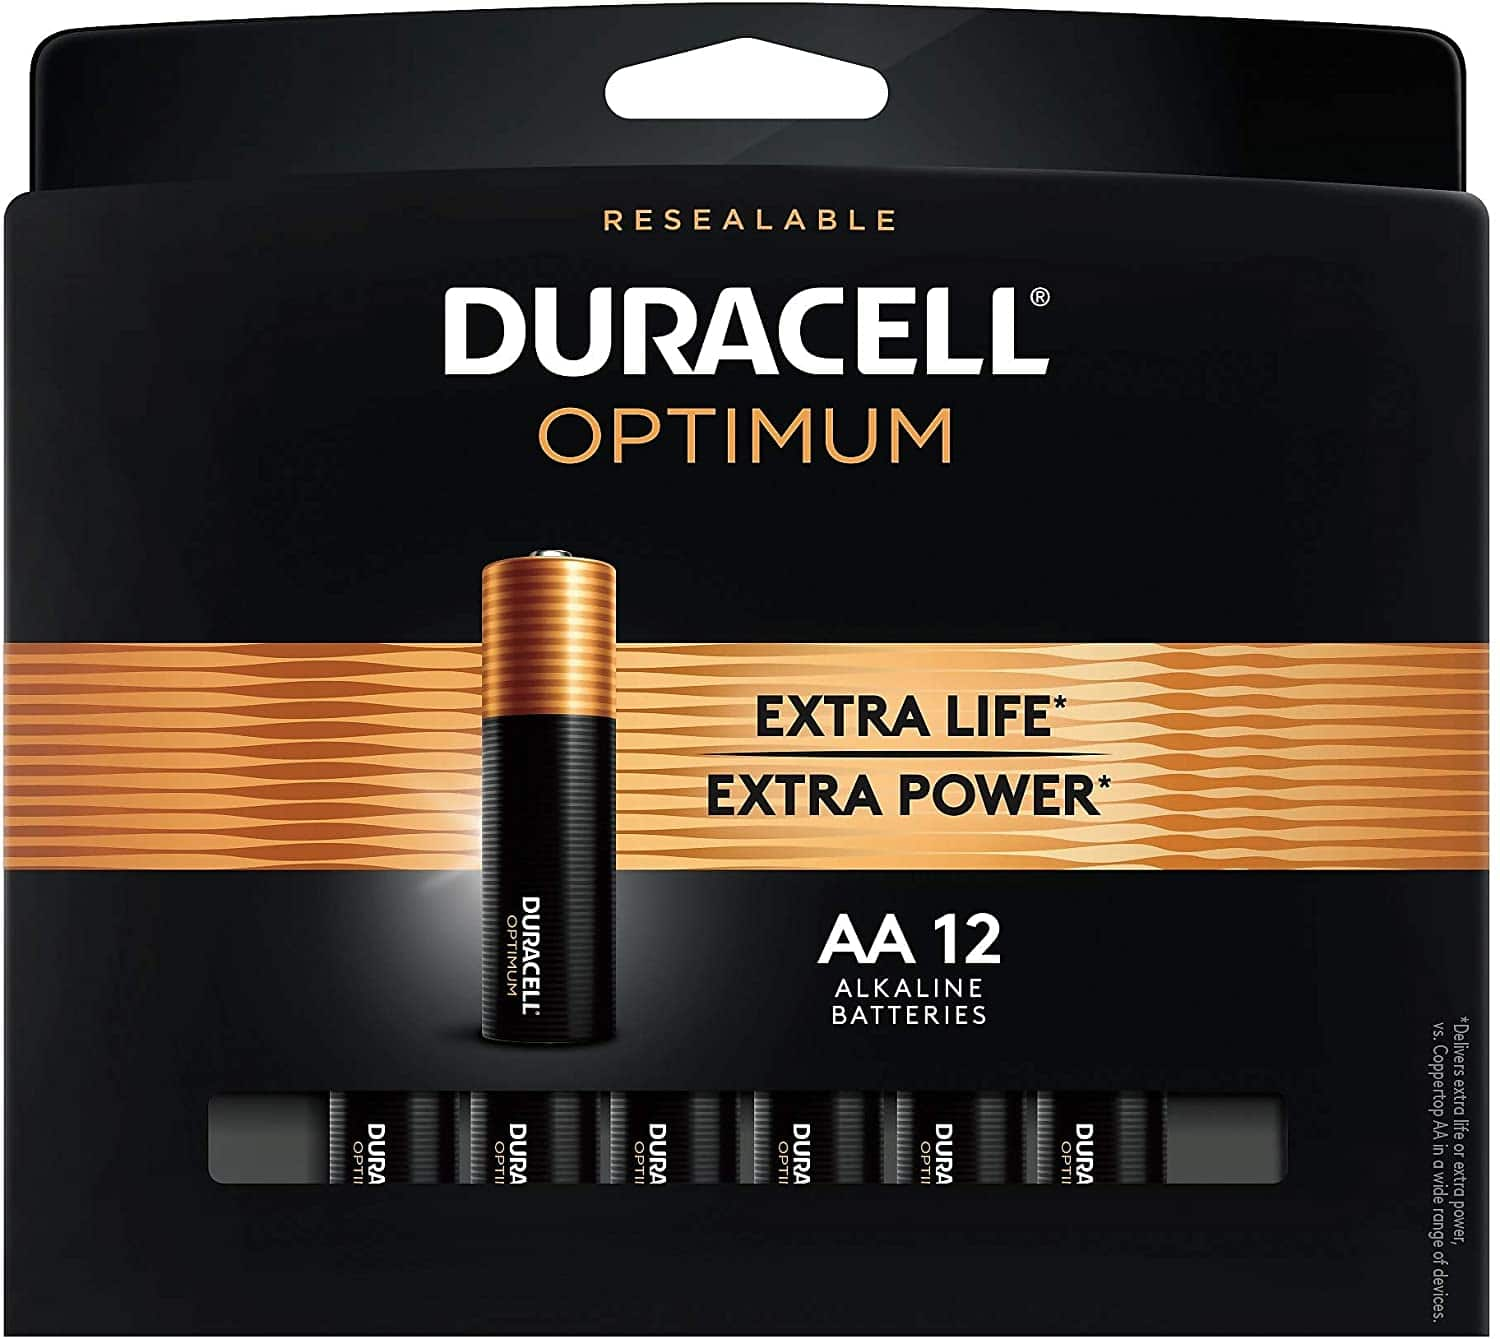 12-Pack Duracell Optimum AA/AAA Batteries + 100% Back in Rewards